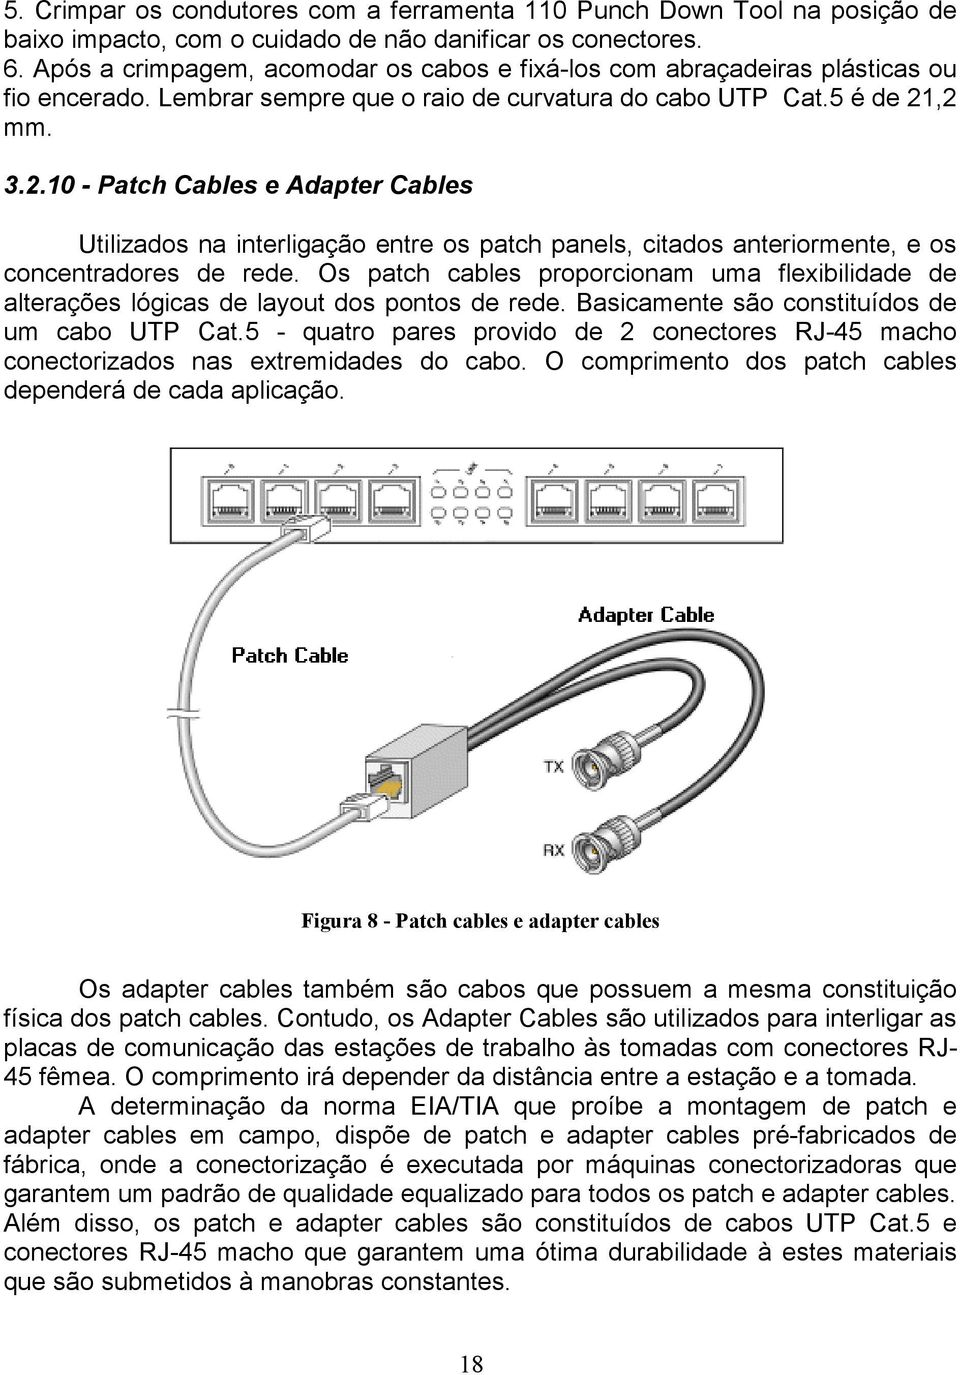 ,2 mm. 3.2.10 - Patch Cables e Adapter Cables Utilizados na interligação entre os patch panels, citados anteriormente, e os concentradores de rede.